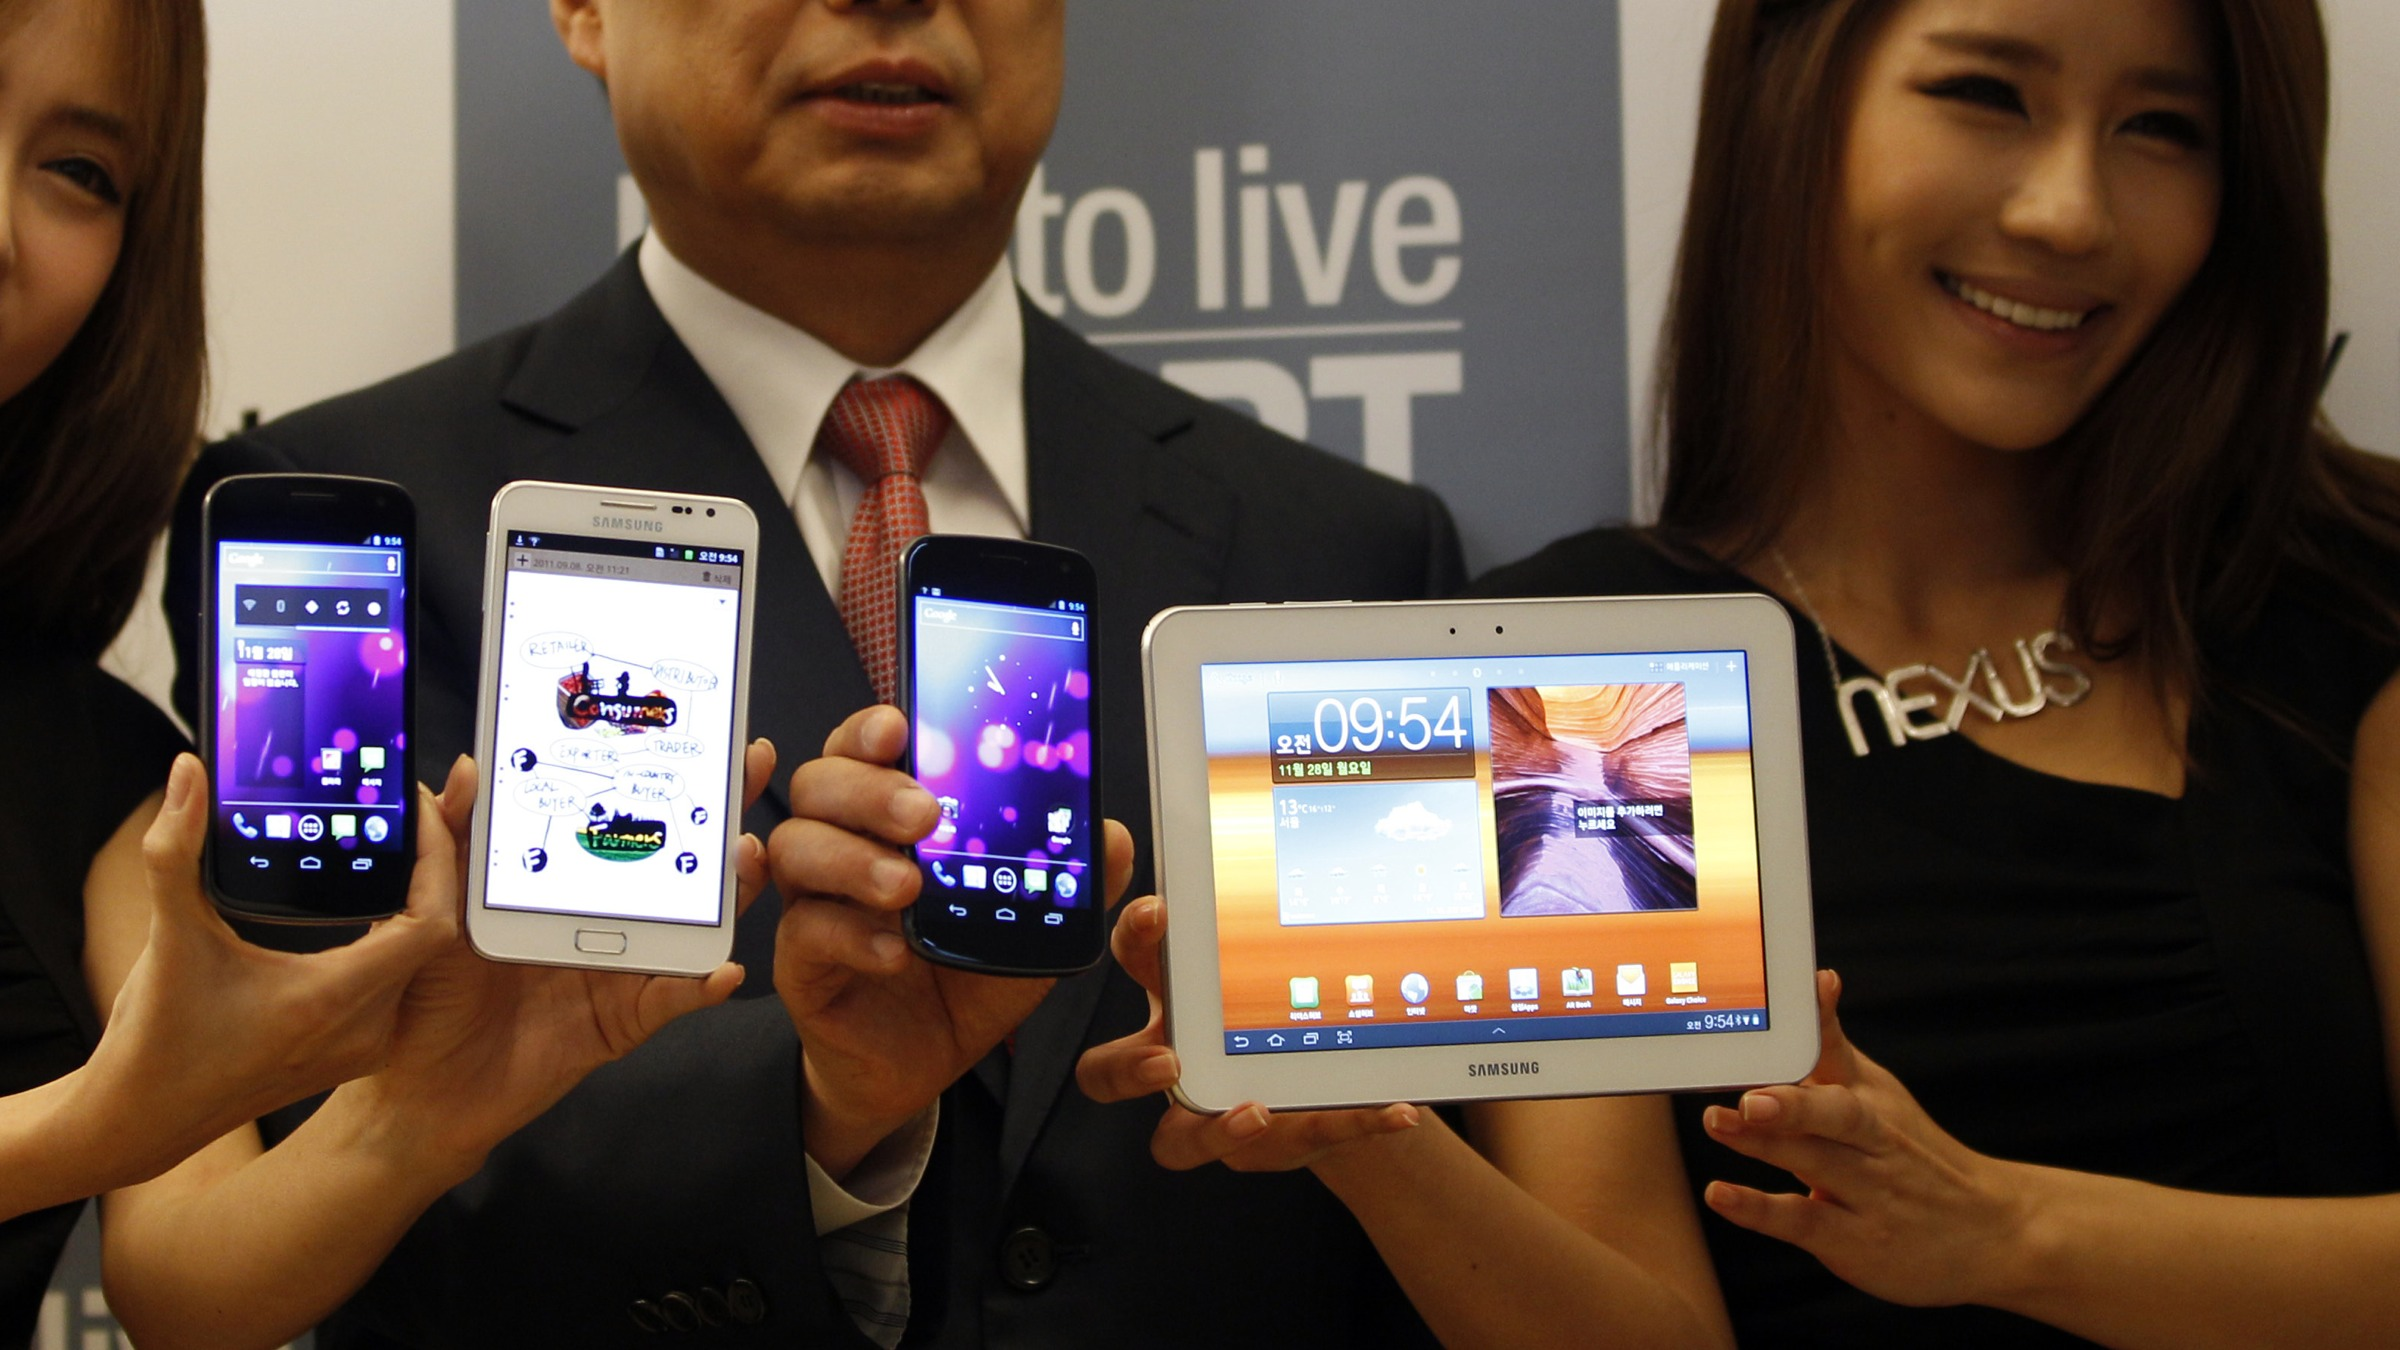 "Samsung Electronics mobile executive Shin Jong-gyun, center, and models display Samsung Electronics' newest devices Galaxy Note, second from left, which features the 5.29"" Super Amoled screen and runs on the Android 2.3, Galaxy Nexus which features the 4.65 Super Amoled screen and runs on the Android 4.0, left and third from left, and the Galaxy Tab 8.9 LTE, right, during its unveiling ceremony in Seoul, South Korea, Monday, Nov. 28, 2011.(AP Photo/Lee Jin-man)"